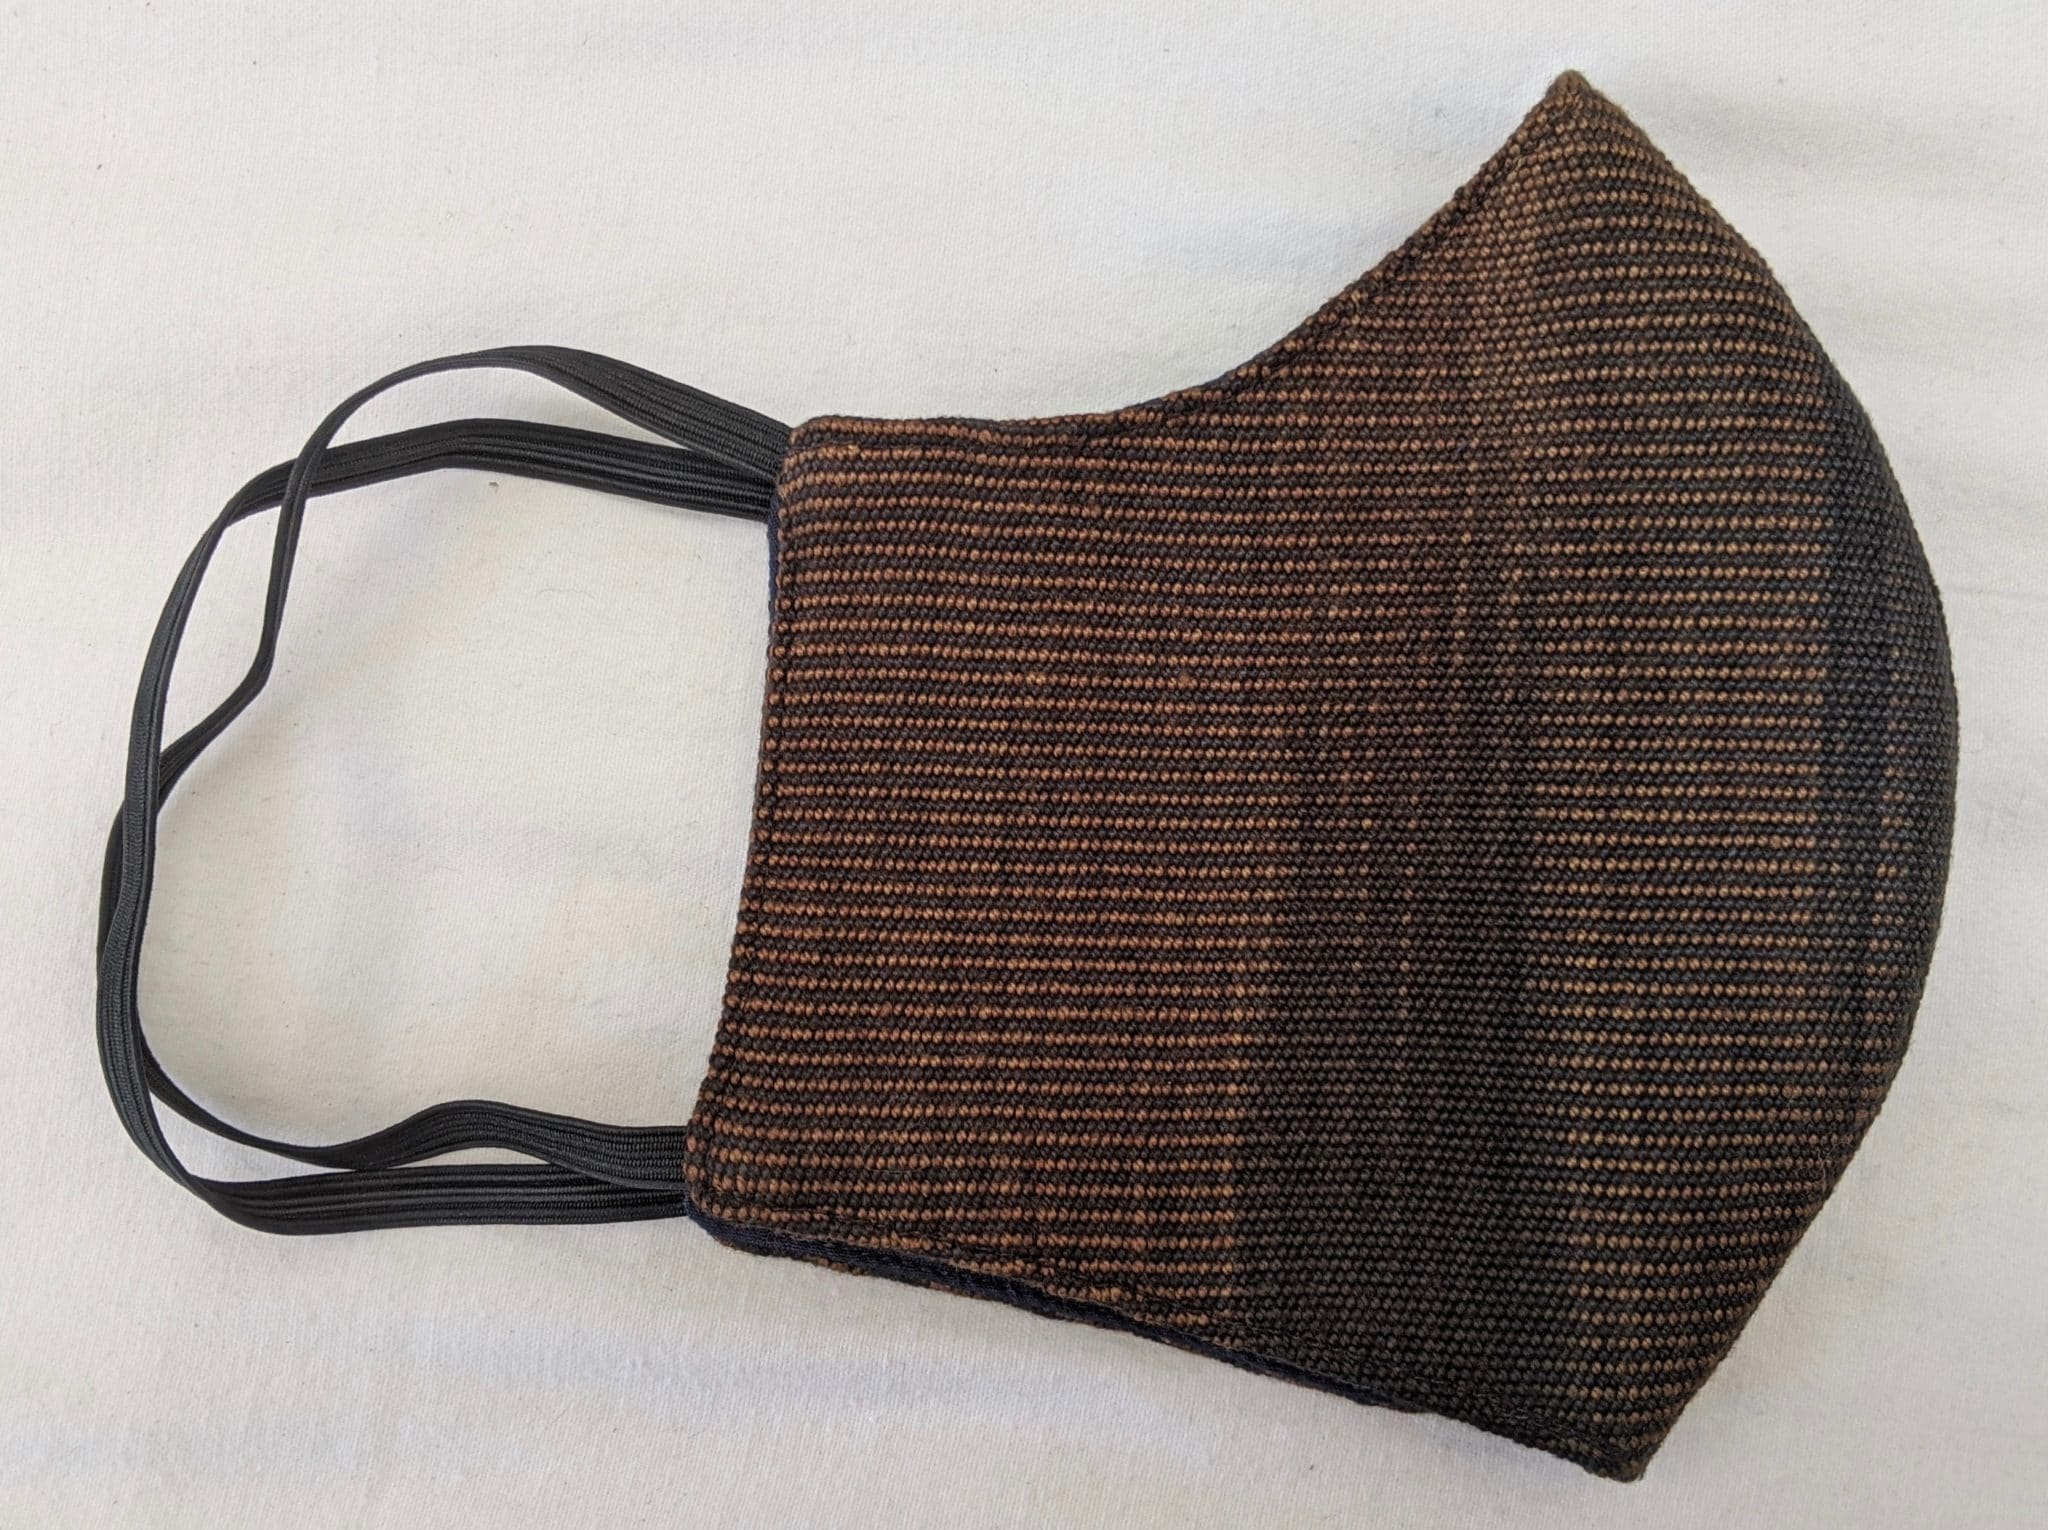 Handwoven Lightweight Bamboo Face Mask with Elastic Behind Ears - Browns and Black